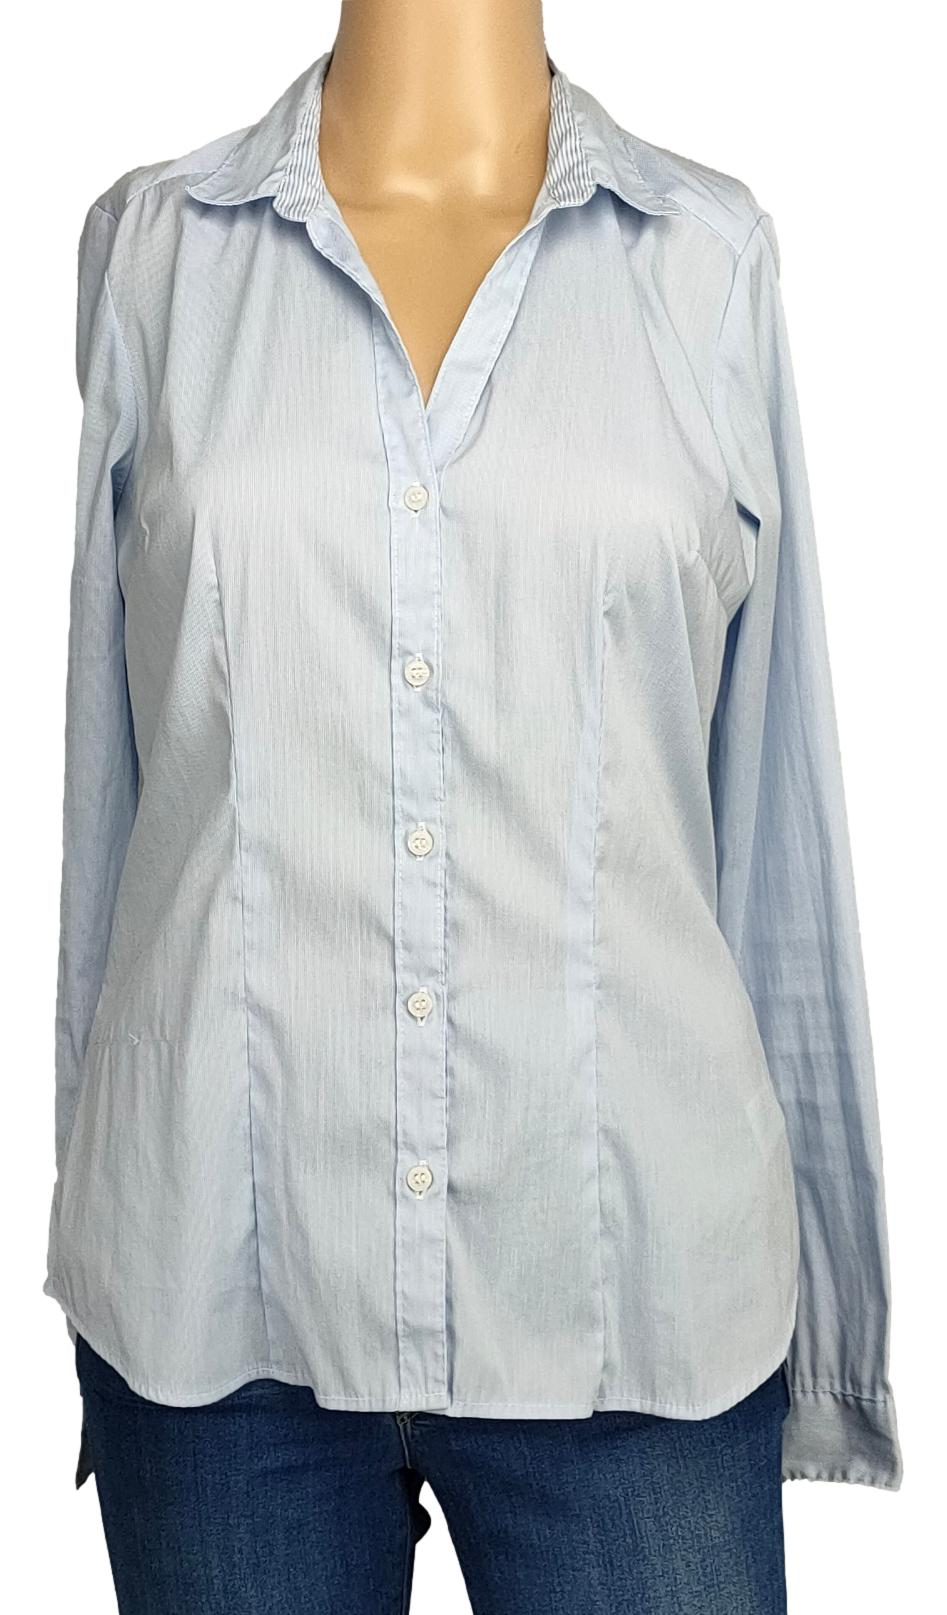 Chemise H&M -Taille 38